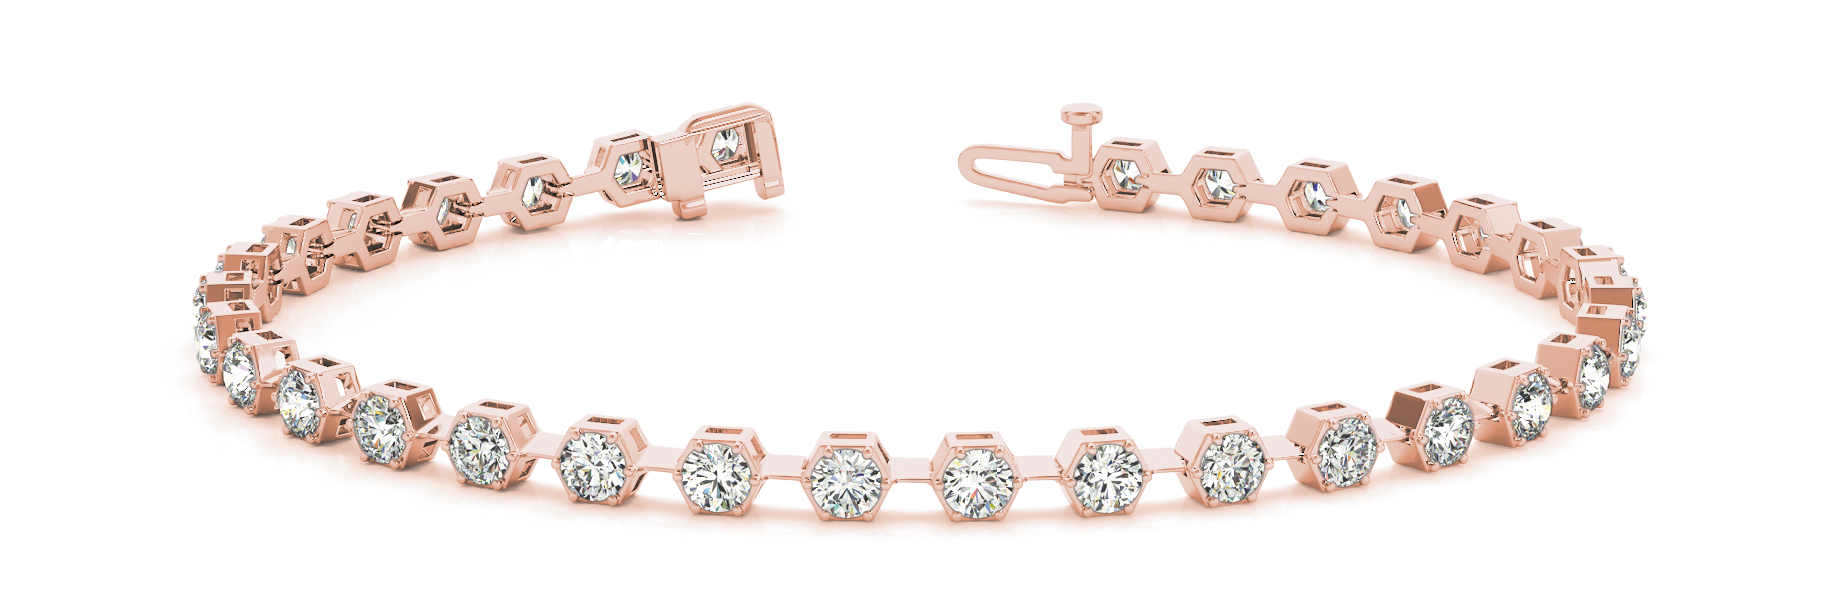 1.6 Carat Round Diamond Hexagon Rose Gold Bracelet